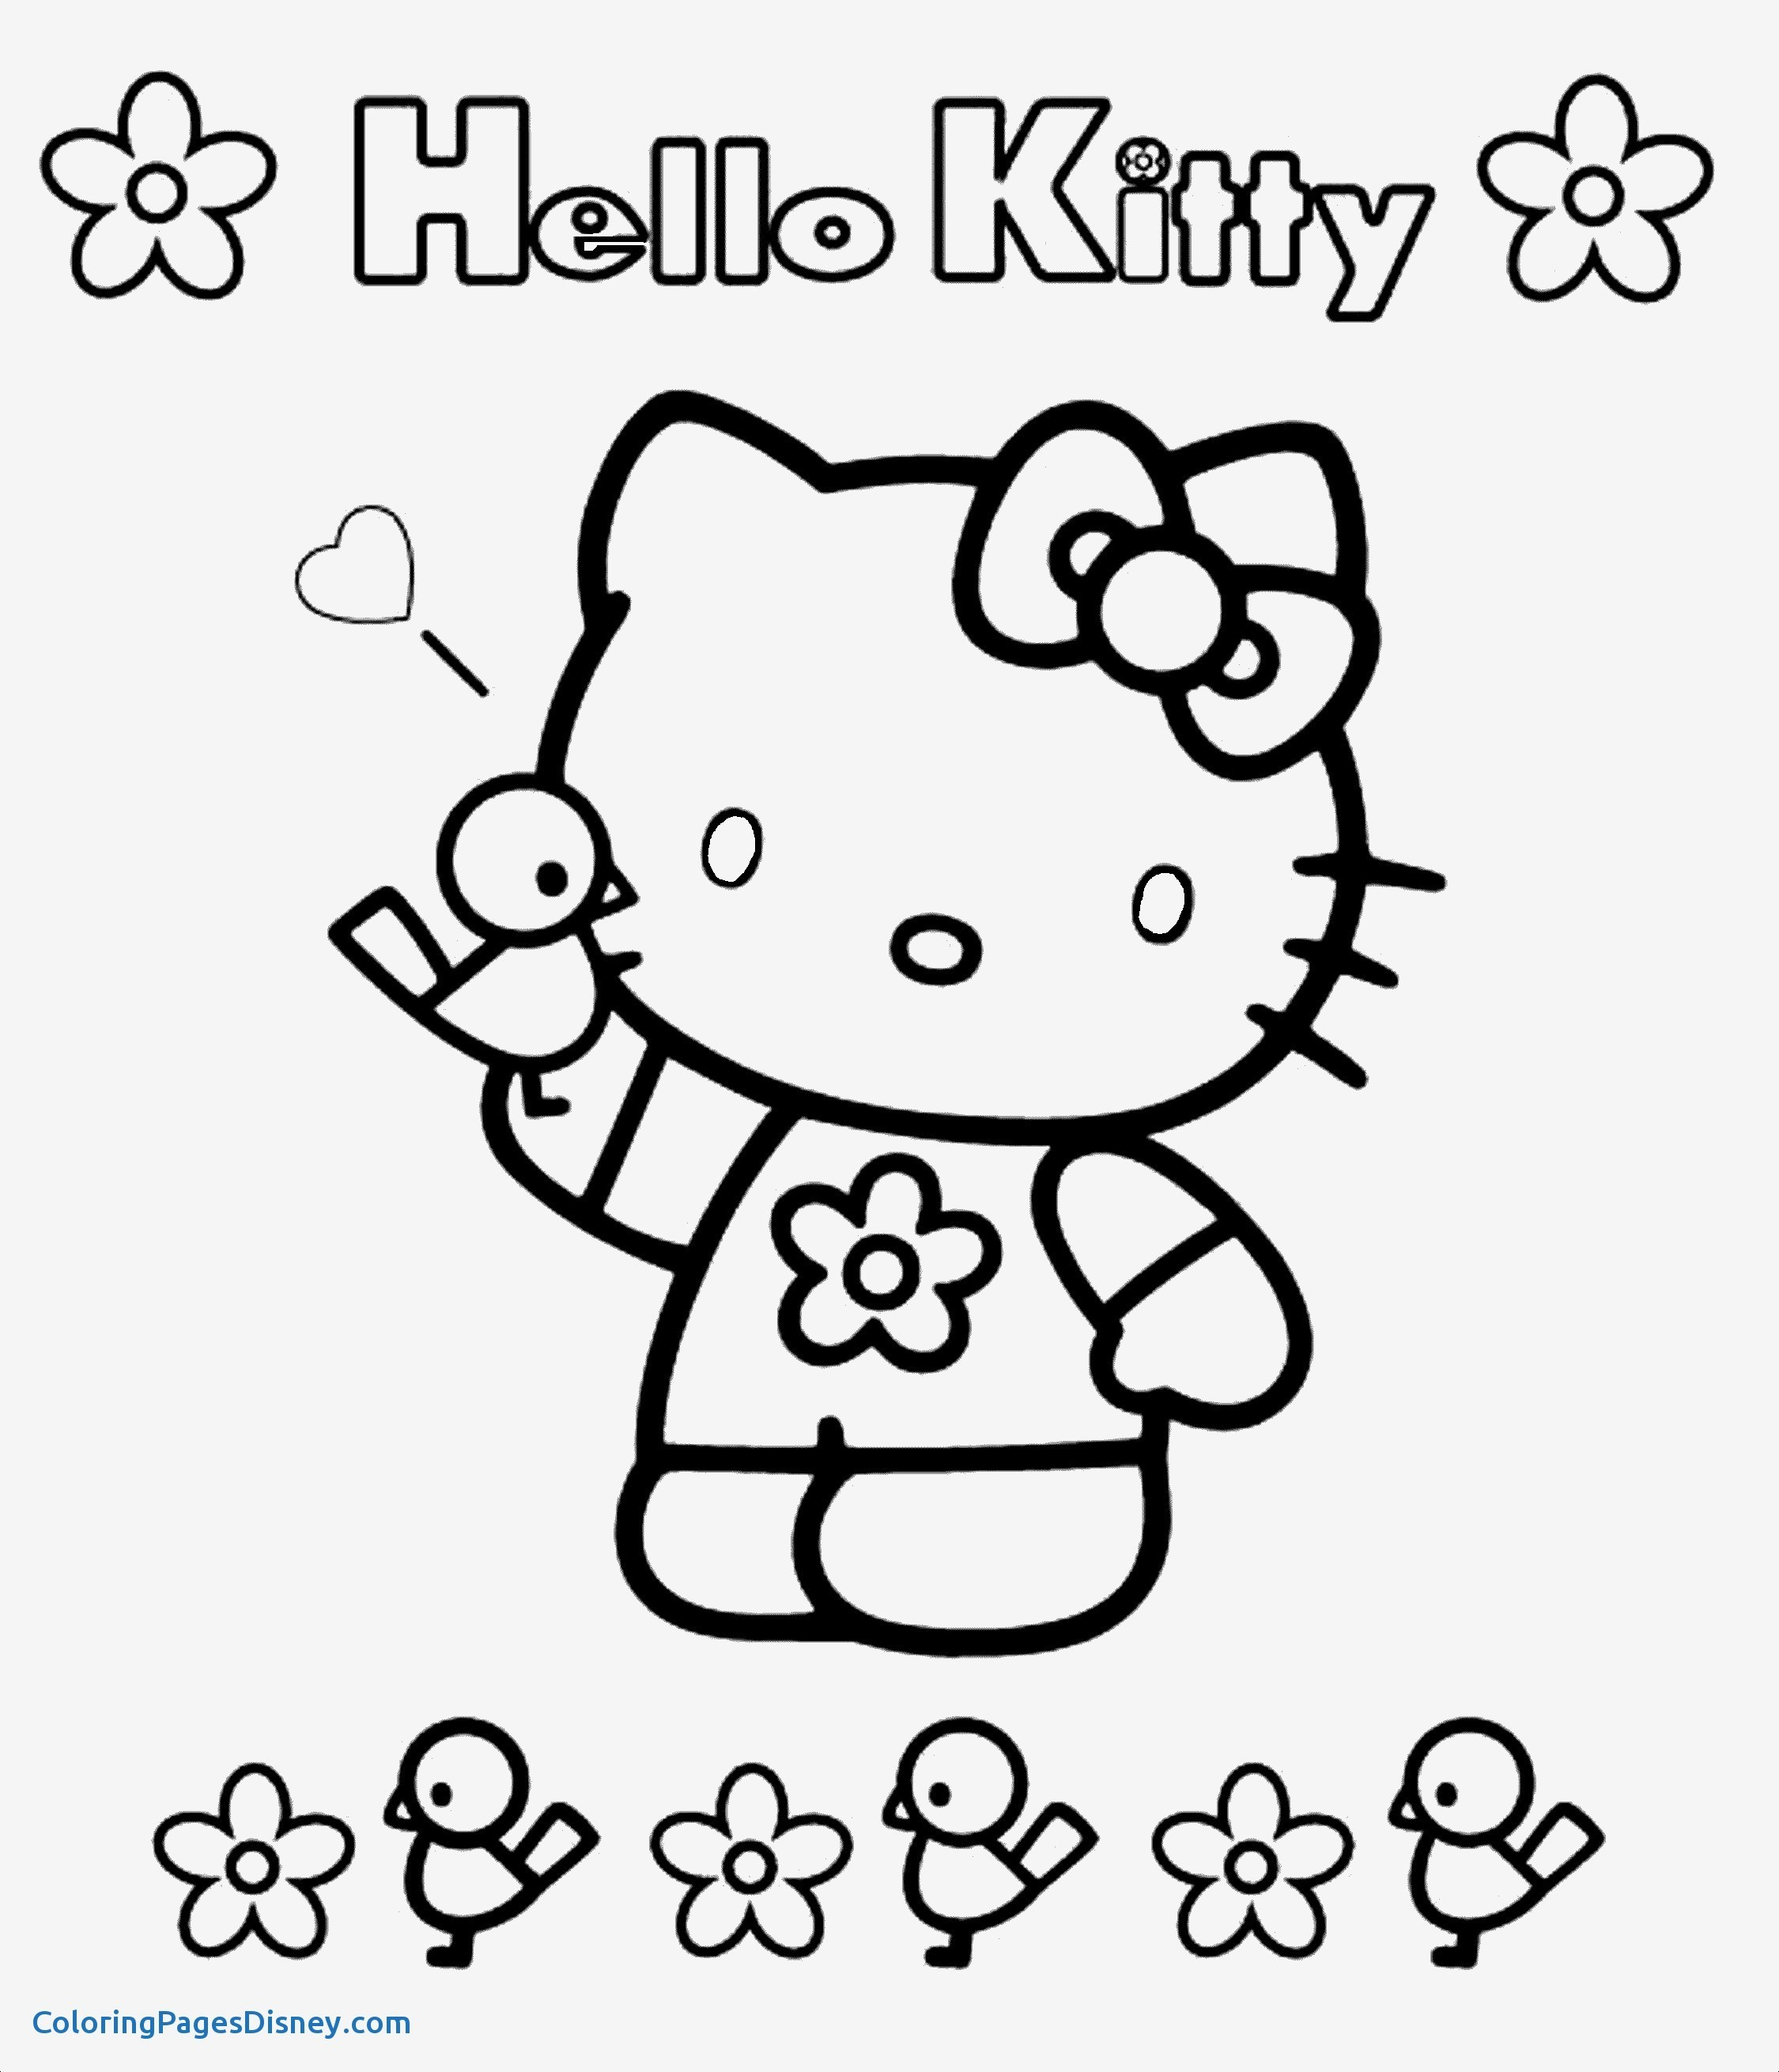 Hello Kitty Christmas Coloring Pages Free Print With Collection Of Pictures To Color And Download